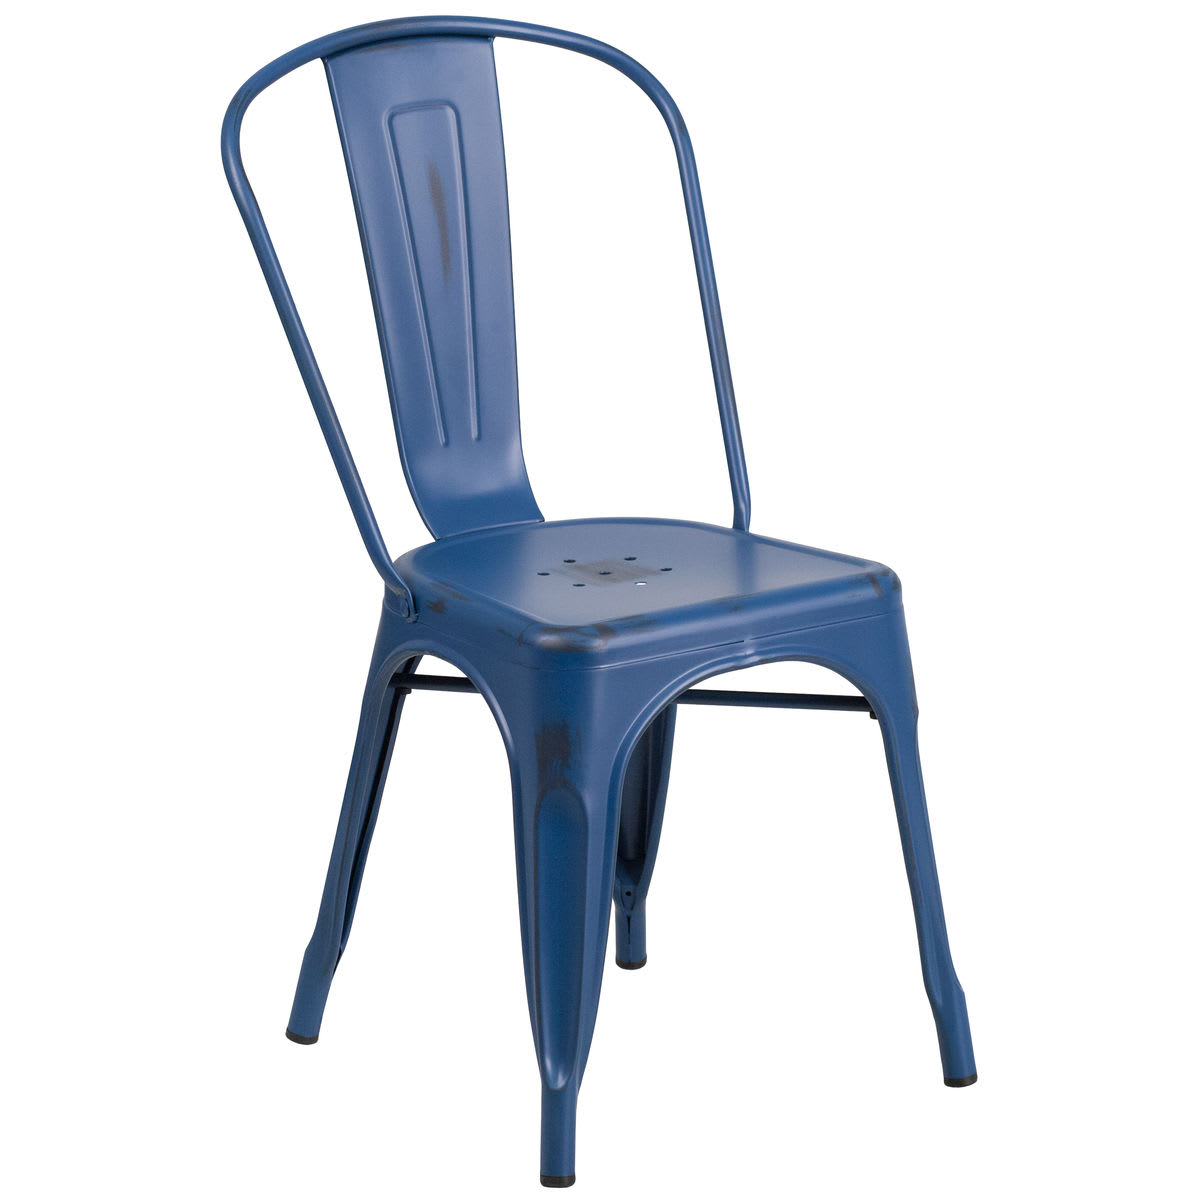 Bistro Style Metal Chair in Distressed Dark Blue Finish